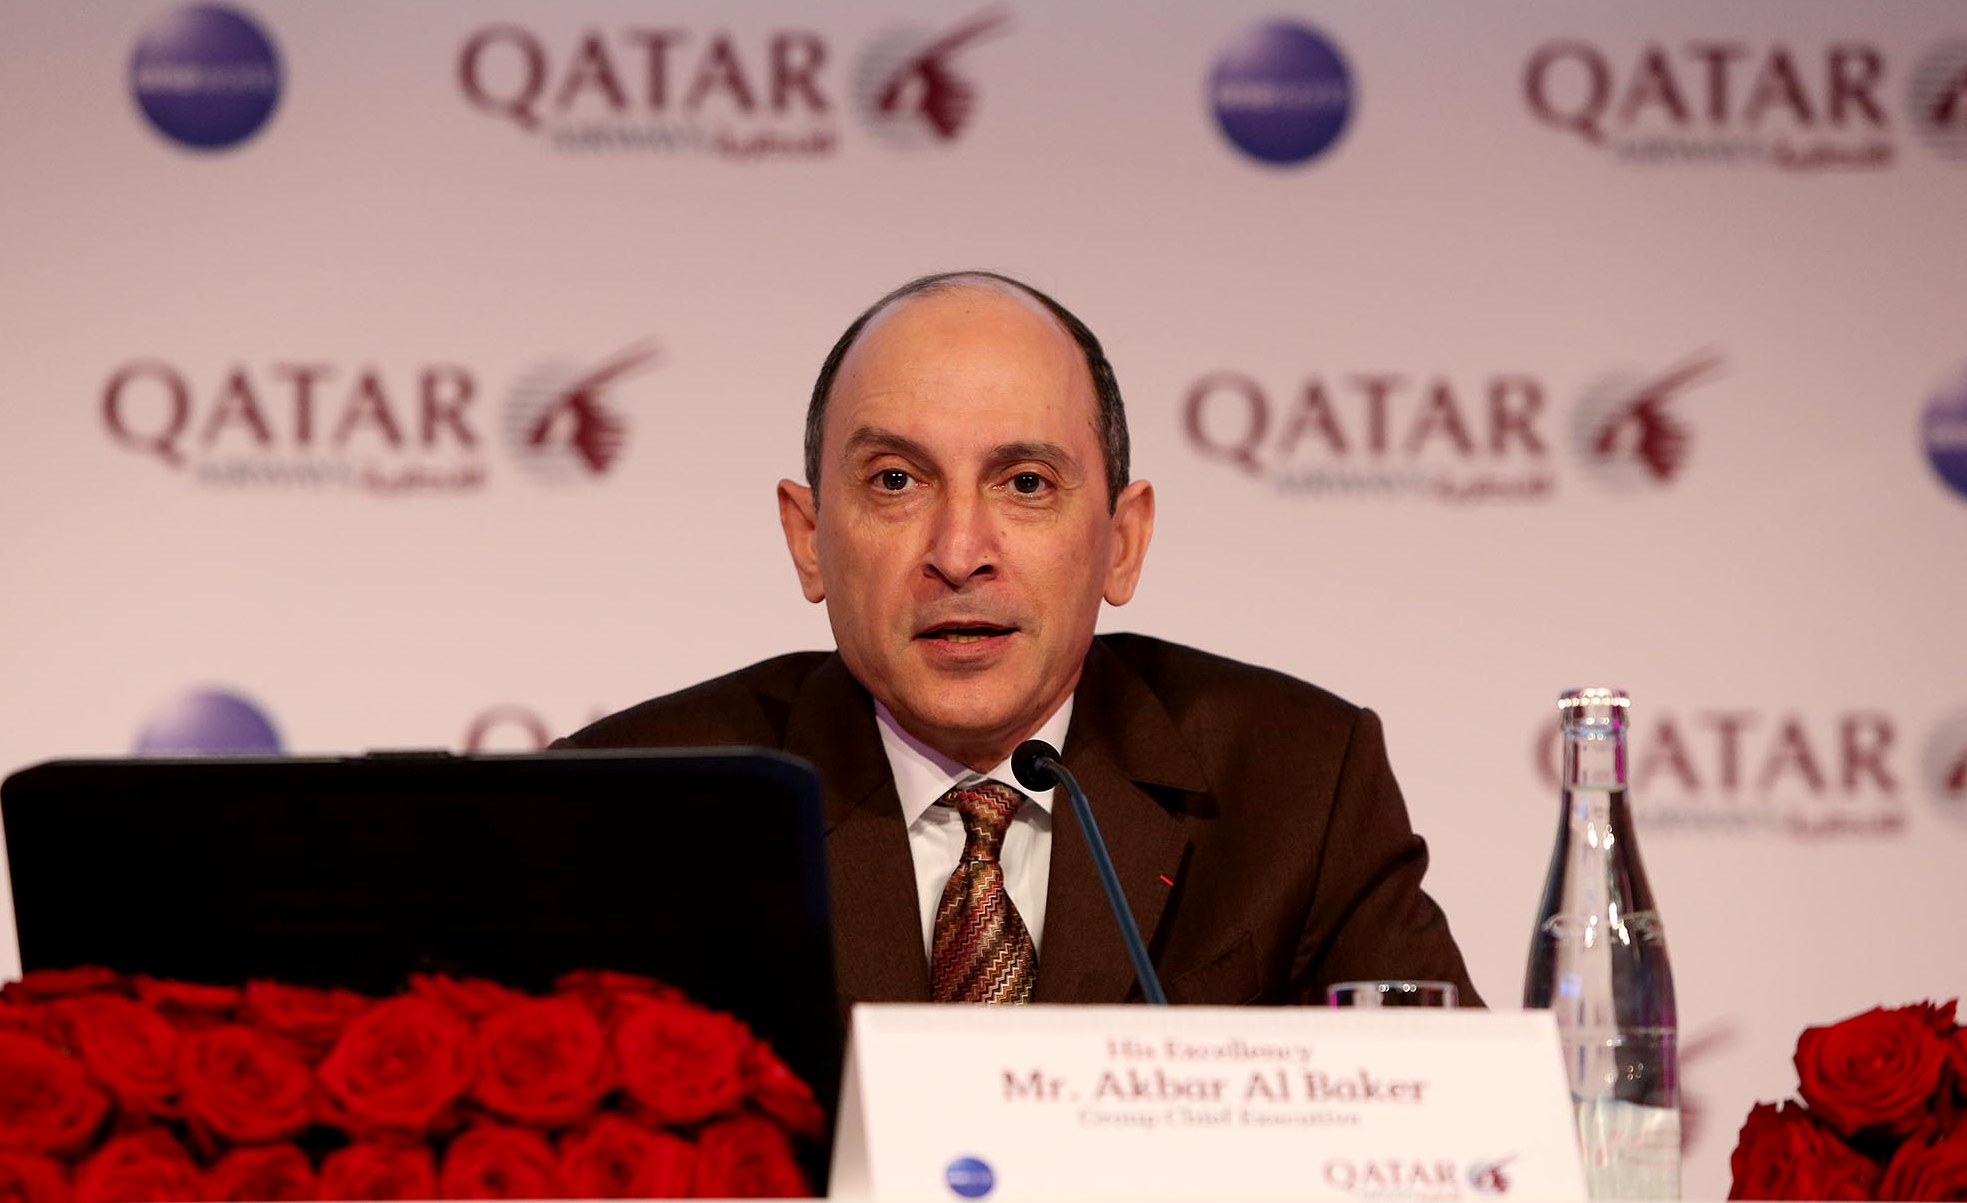 Le PDG de Qatar Airways menace de quitter Oneworld | Pagtour